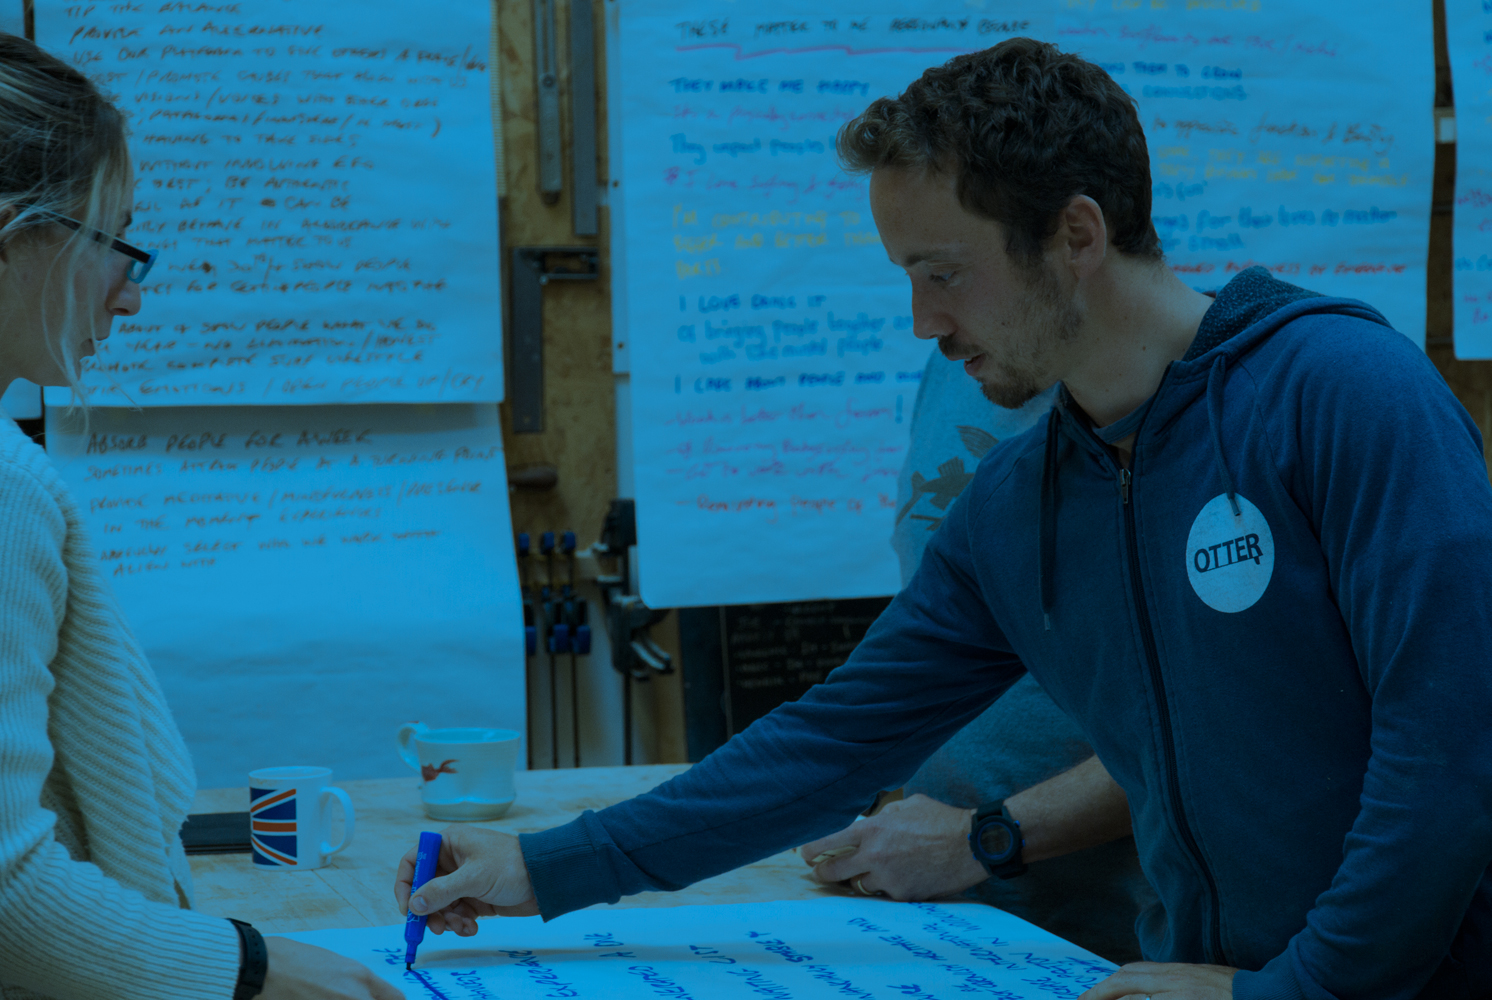 A Purpose and Vision workshop with Otter Surfboards